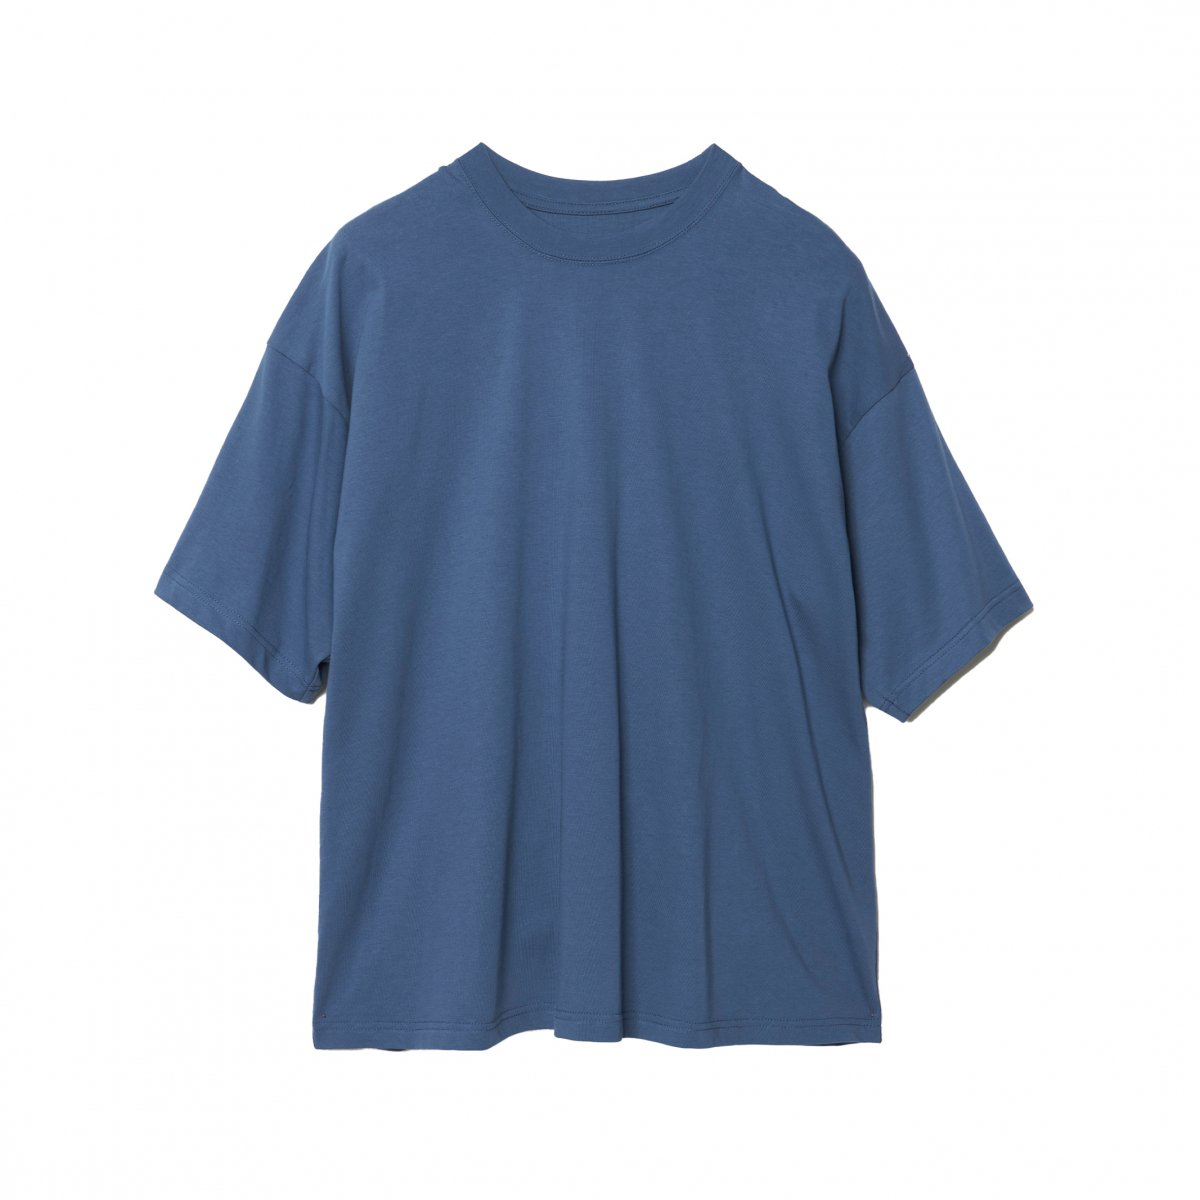 <img class='new_mark_img1' src='https://img.shop-pro.jp/img/new/icons5.gif' style='border:none;display:inline;margin:0px;padding:0px;width:auto;' />EXTRA STAPLE COTTON SHORT SLEEVE TEE / BLUE